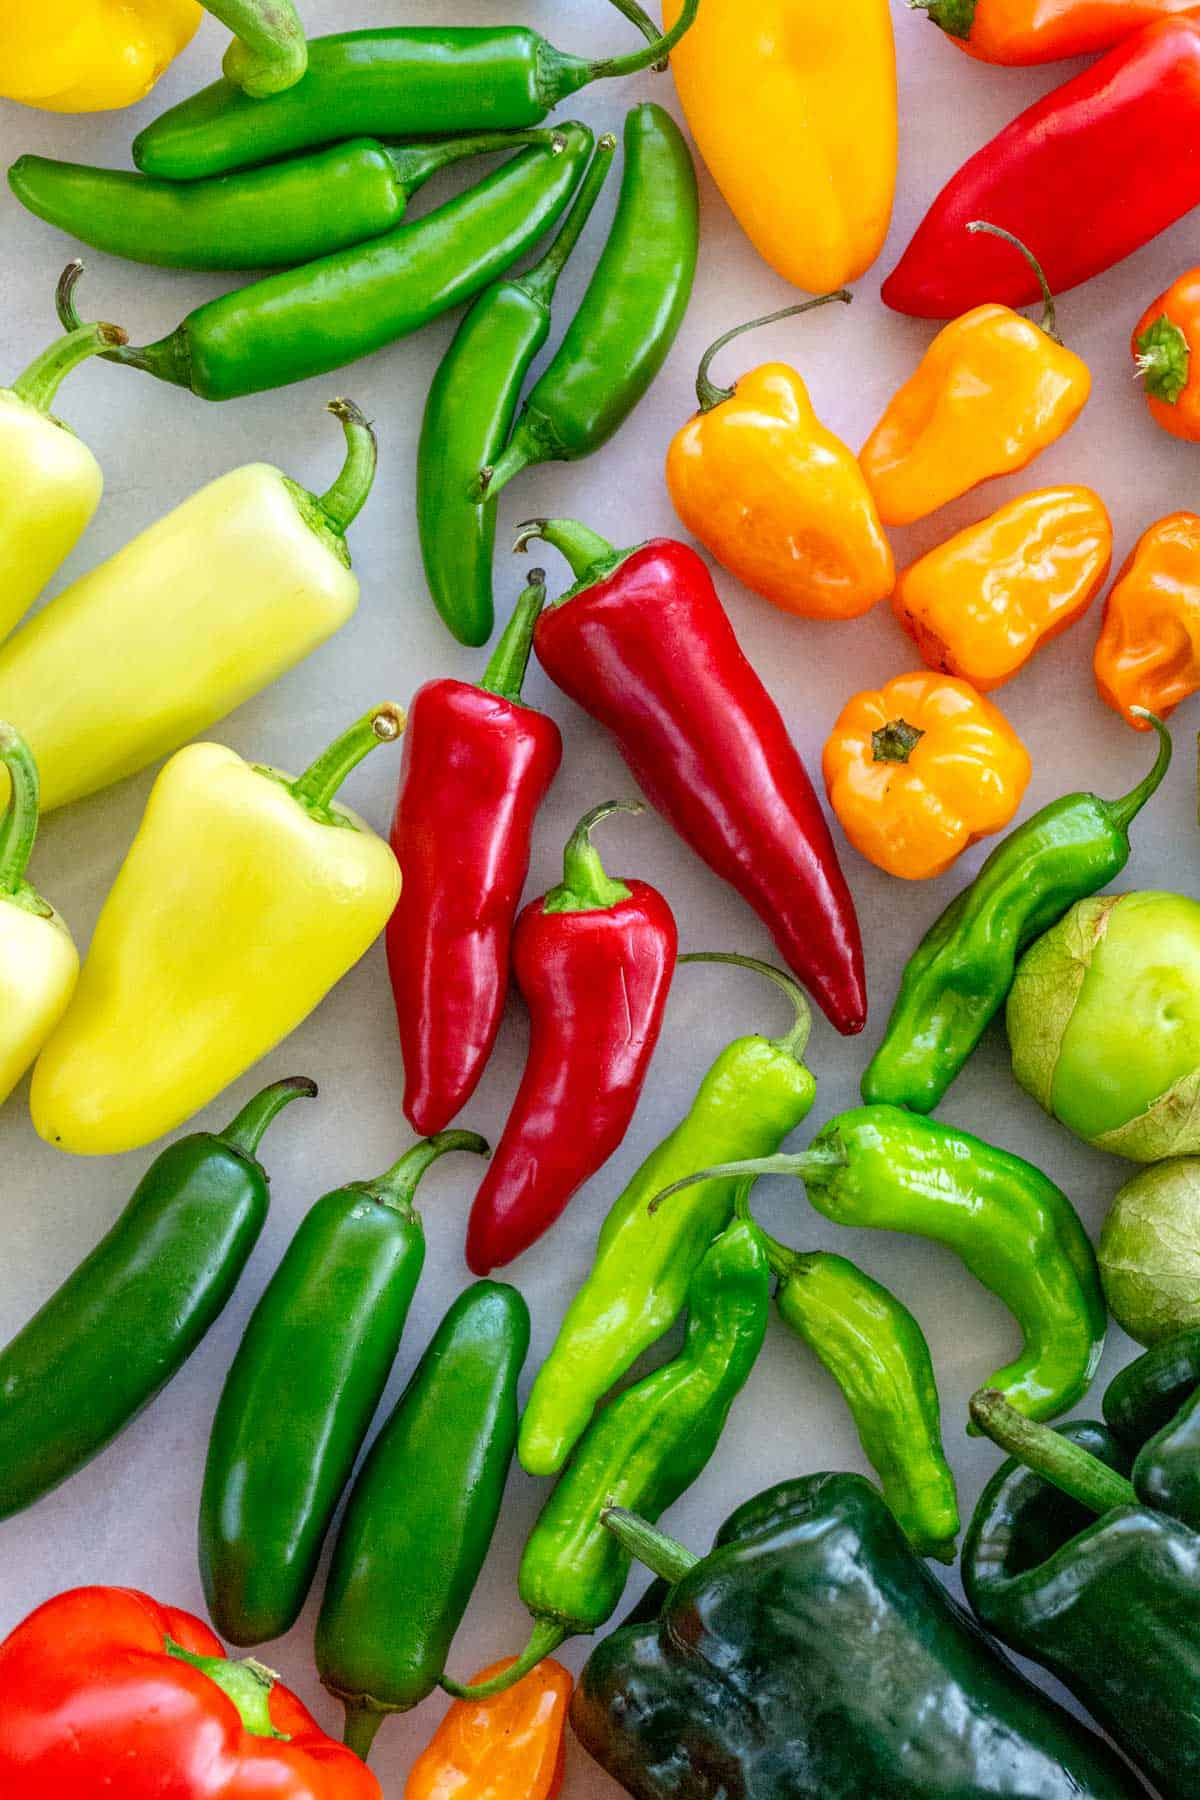 There are so many types of peppers. Some are easy on the taste buds; others are a mild form of torture. So how hot can you go? Let's find out. #peppers #ghostpepper #bellpepper